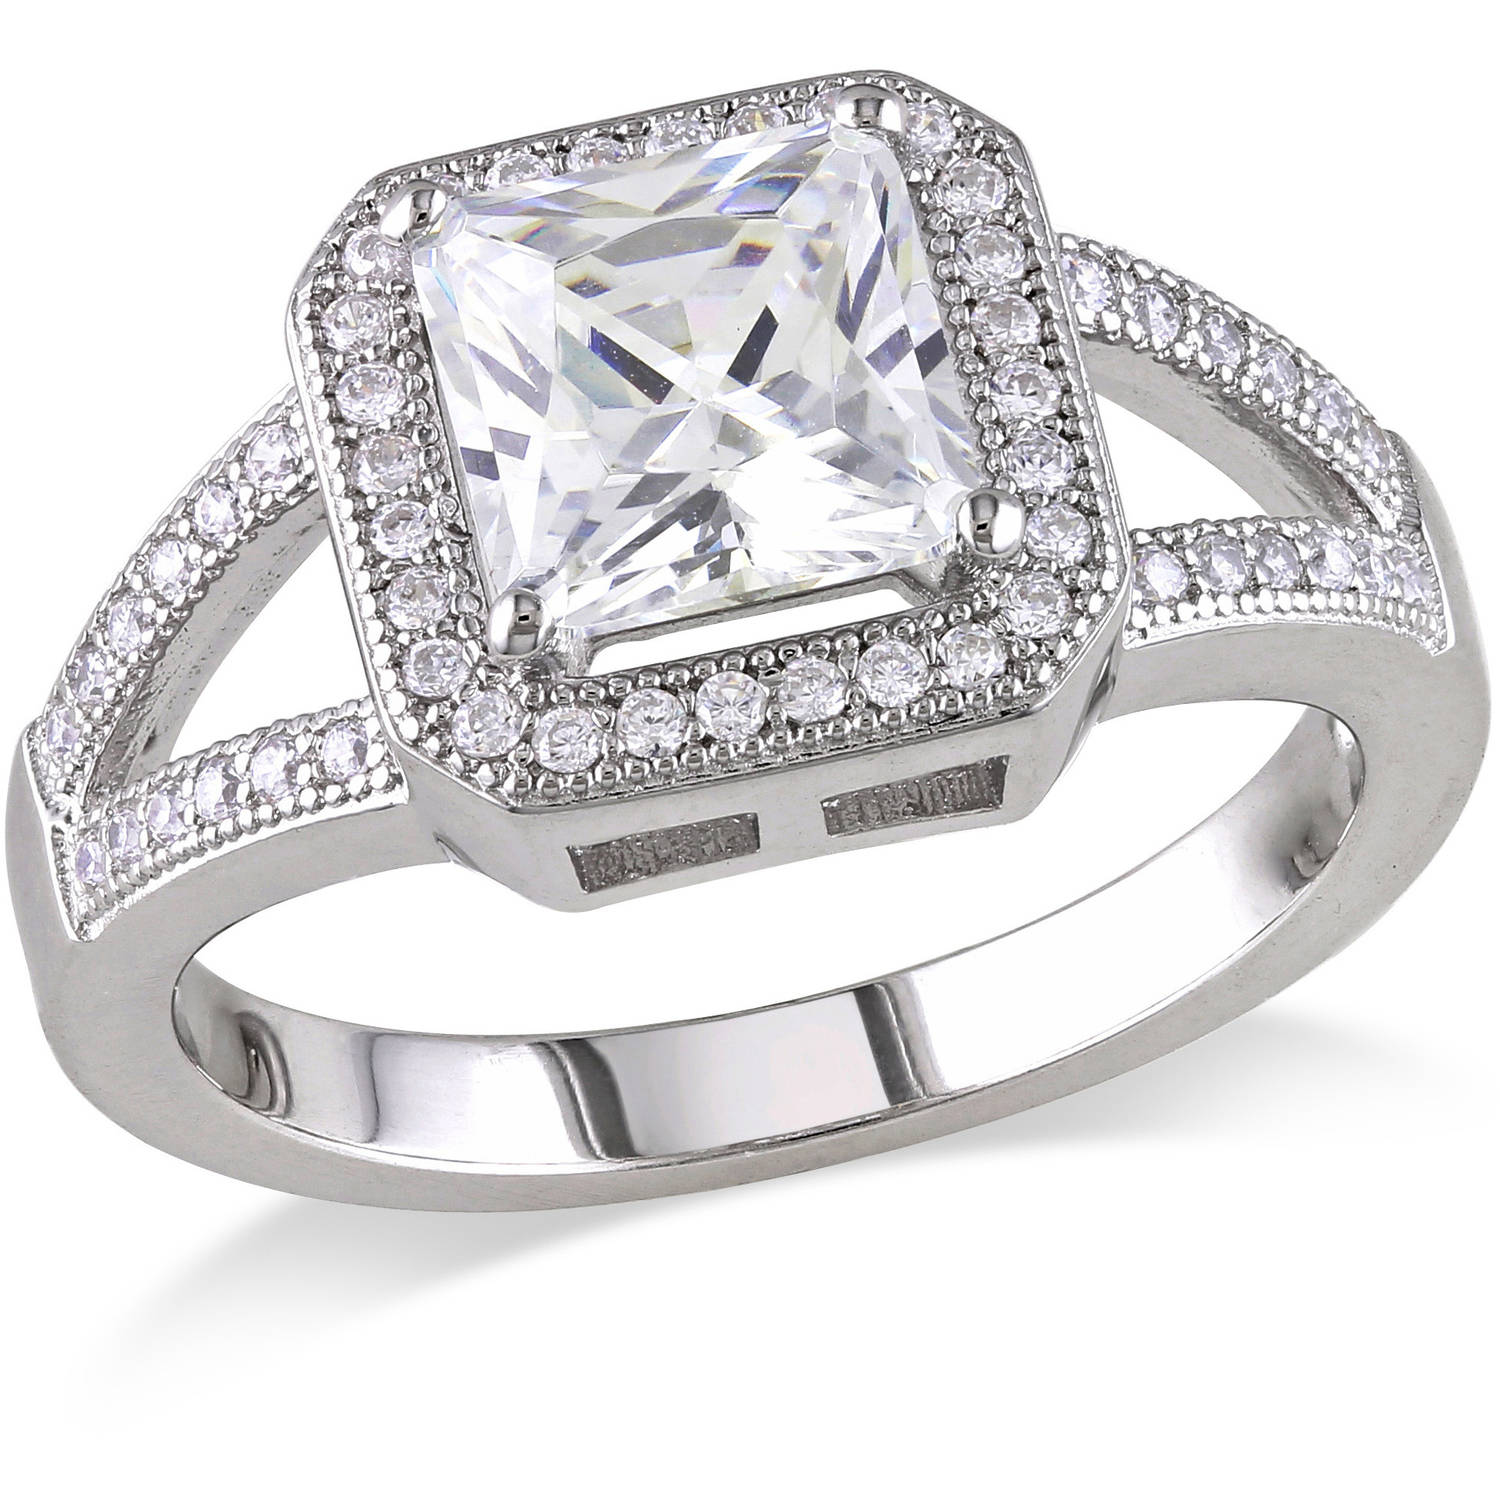 3-7/8 Carat T.G.W. Square- and Round-Cut CZ Sterling Silver Engagement Ring